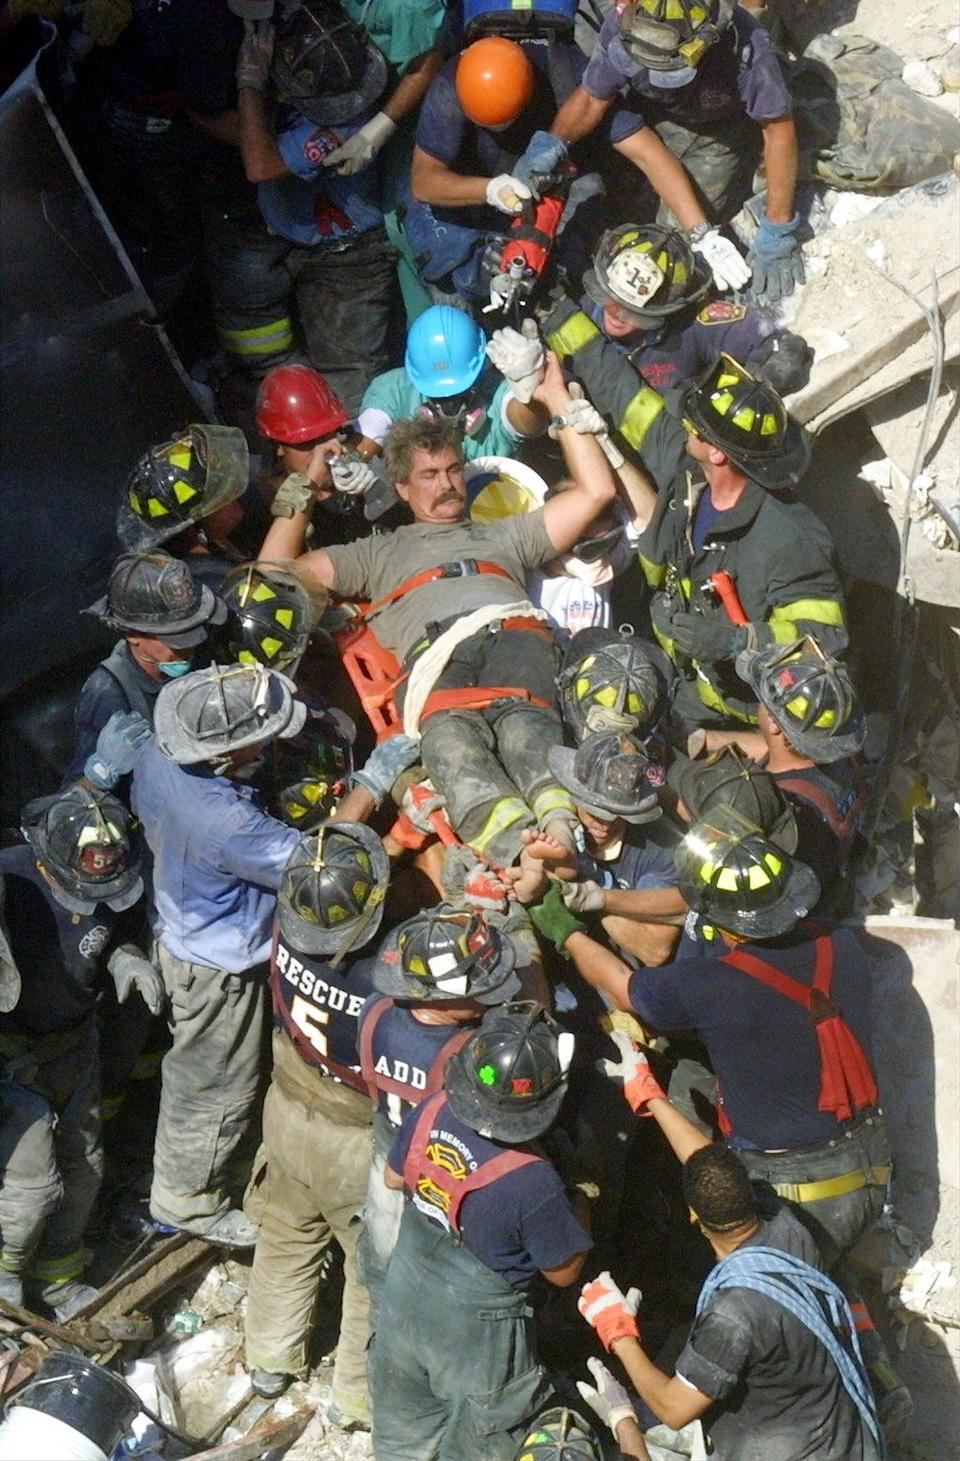 A rescue worker is pulled from the rubble (Getty)